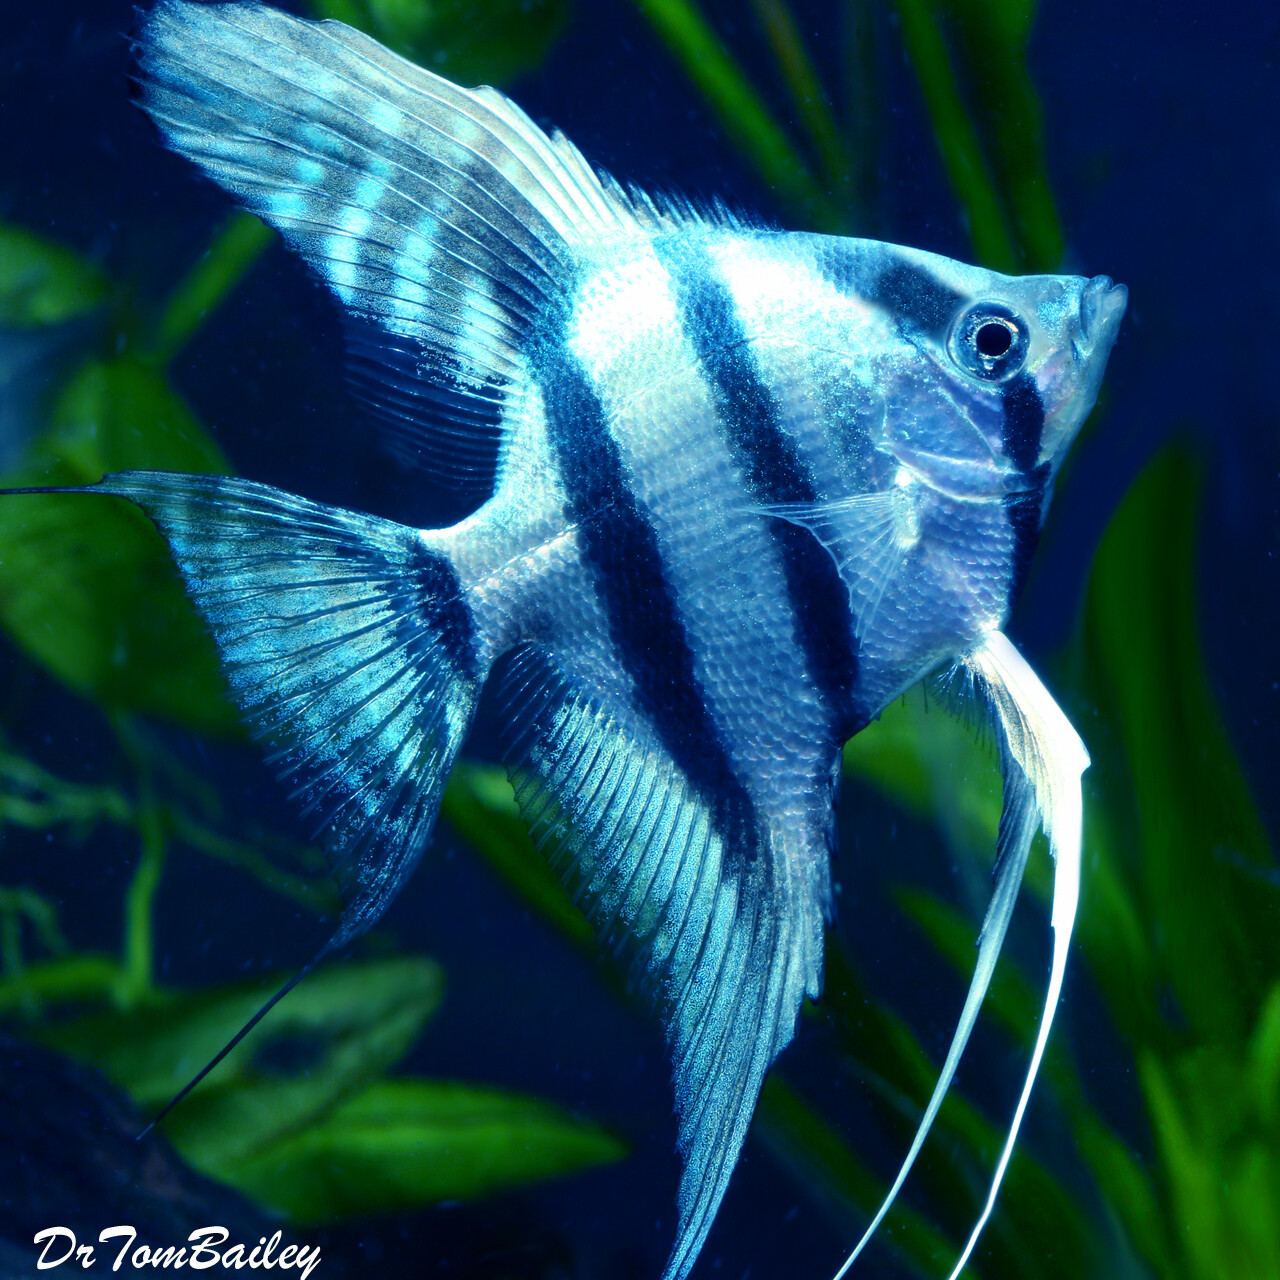 "Premium Rare WYSIWYG Blue Cobalt Zebra Angelfish, 3.5"" to 4"" tall in our tank G-12."